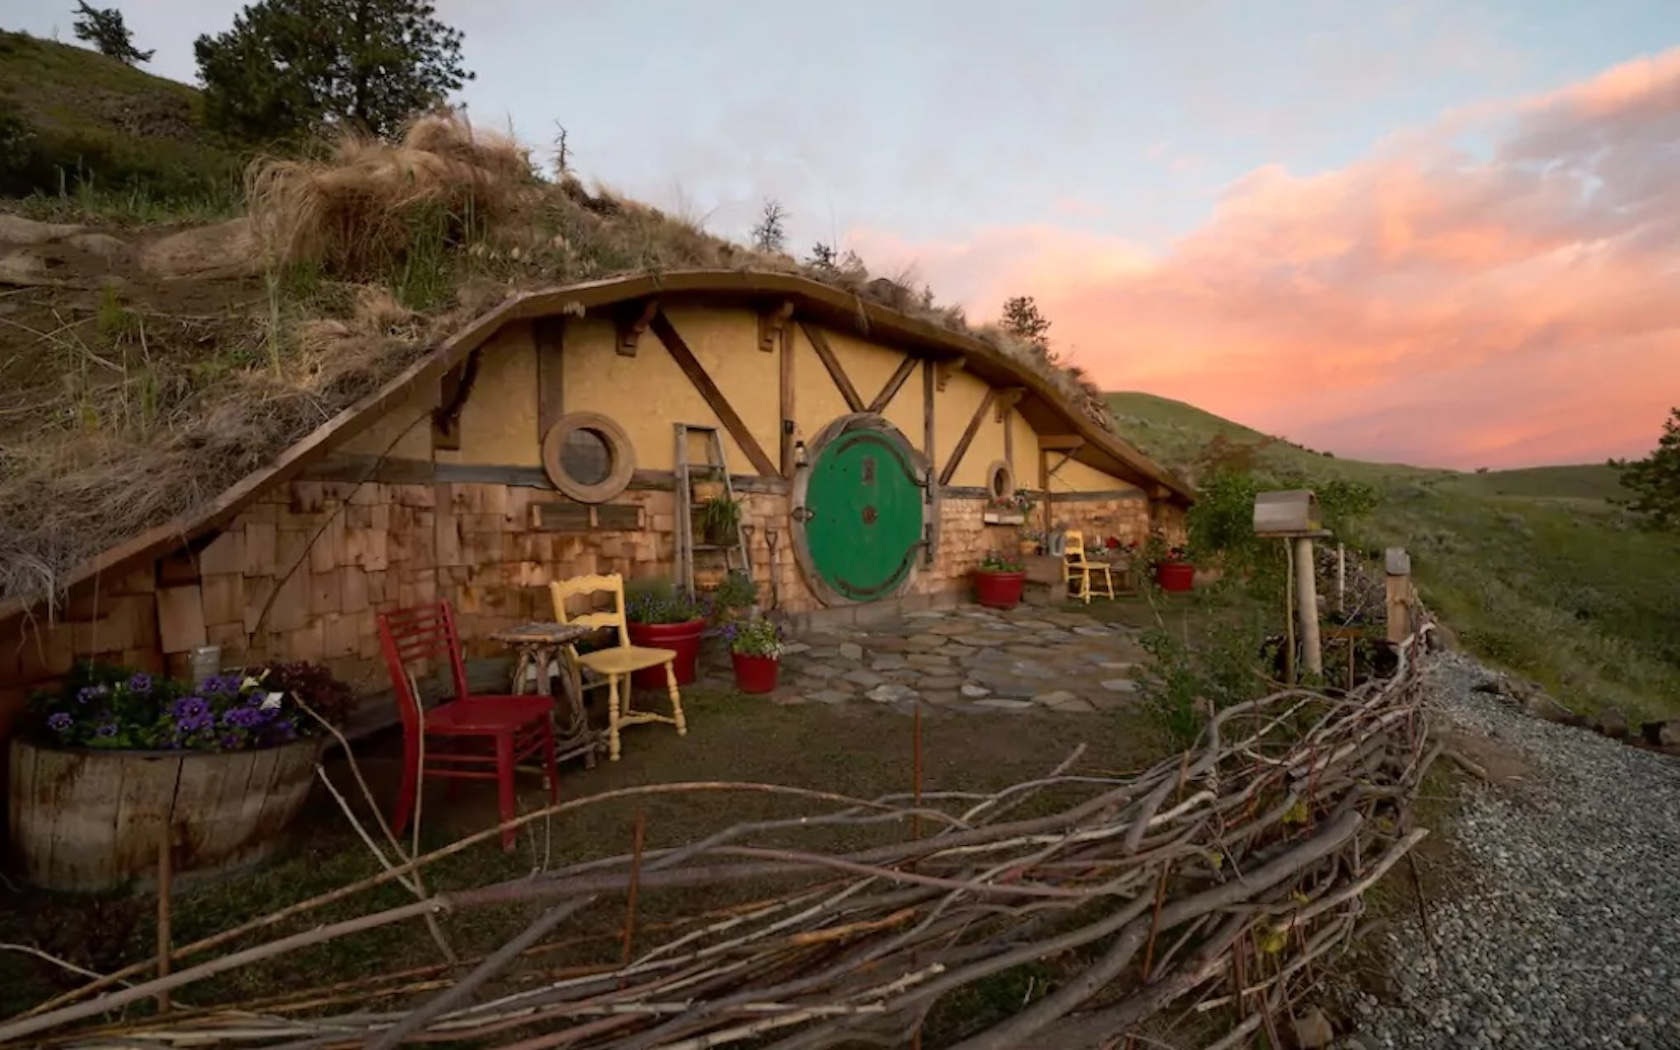 You Can Rent This Insanely Realistic Hobbit House On Airbnb